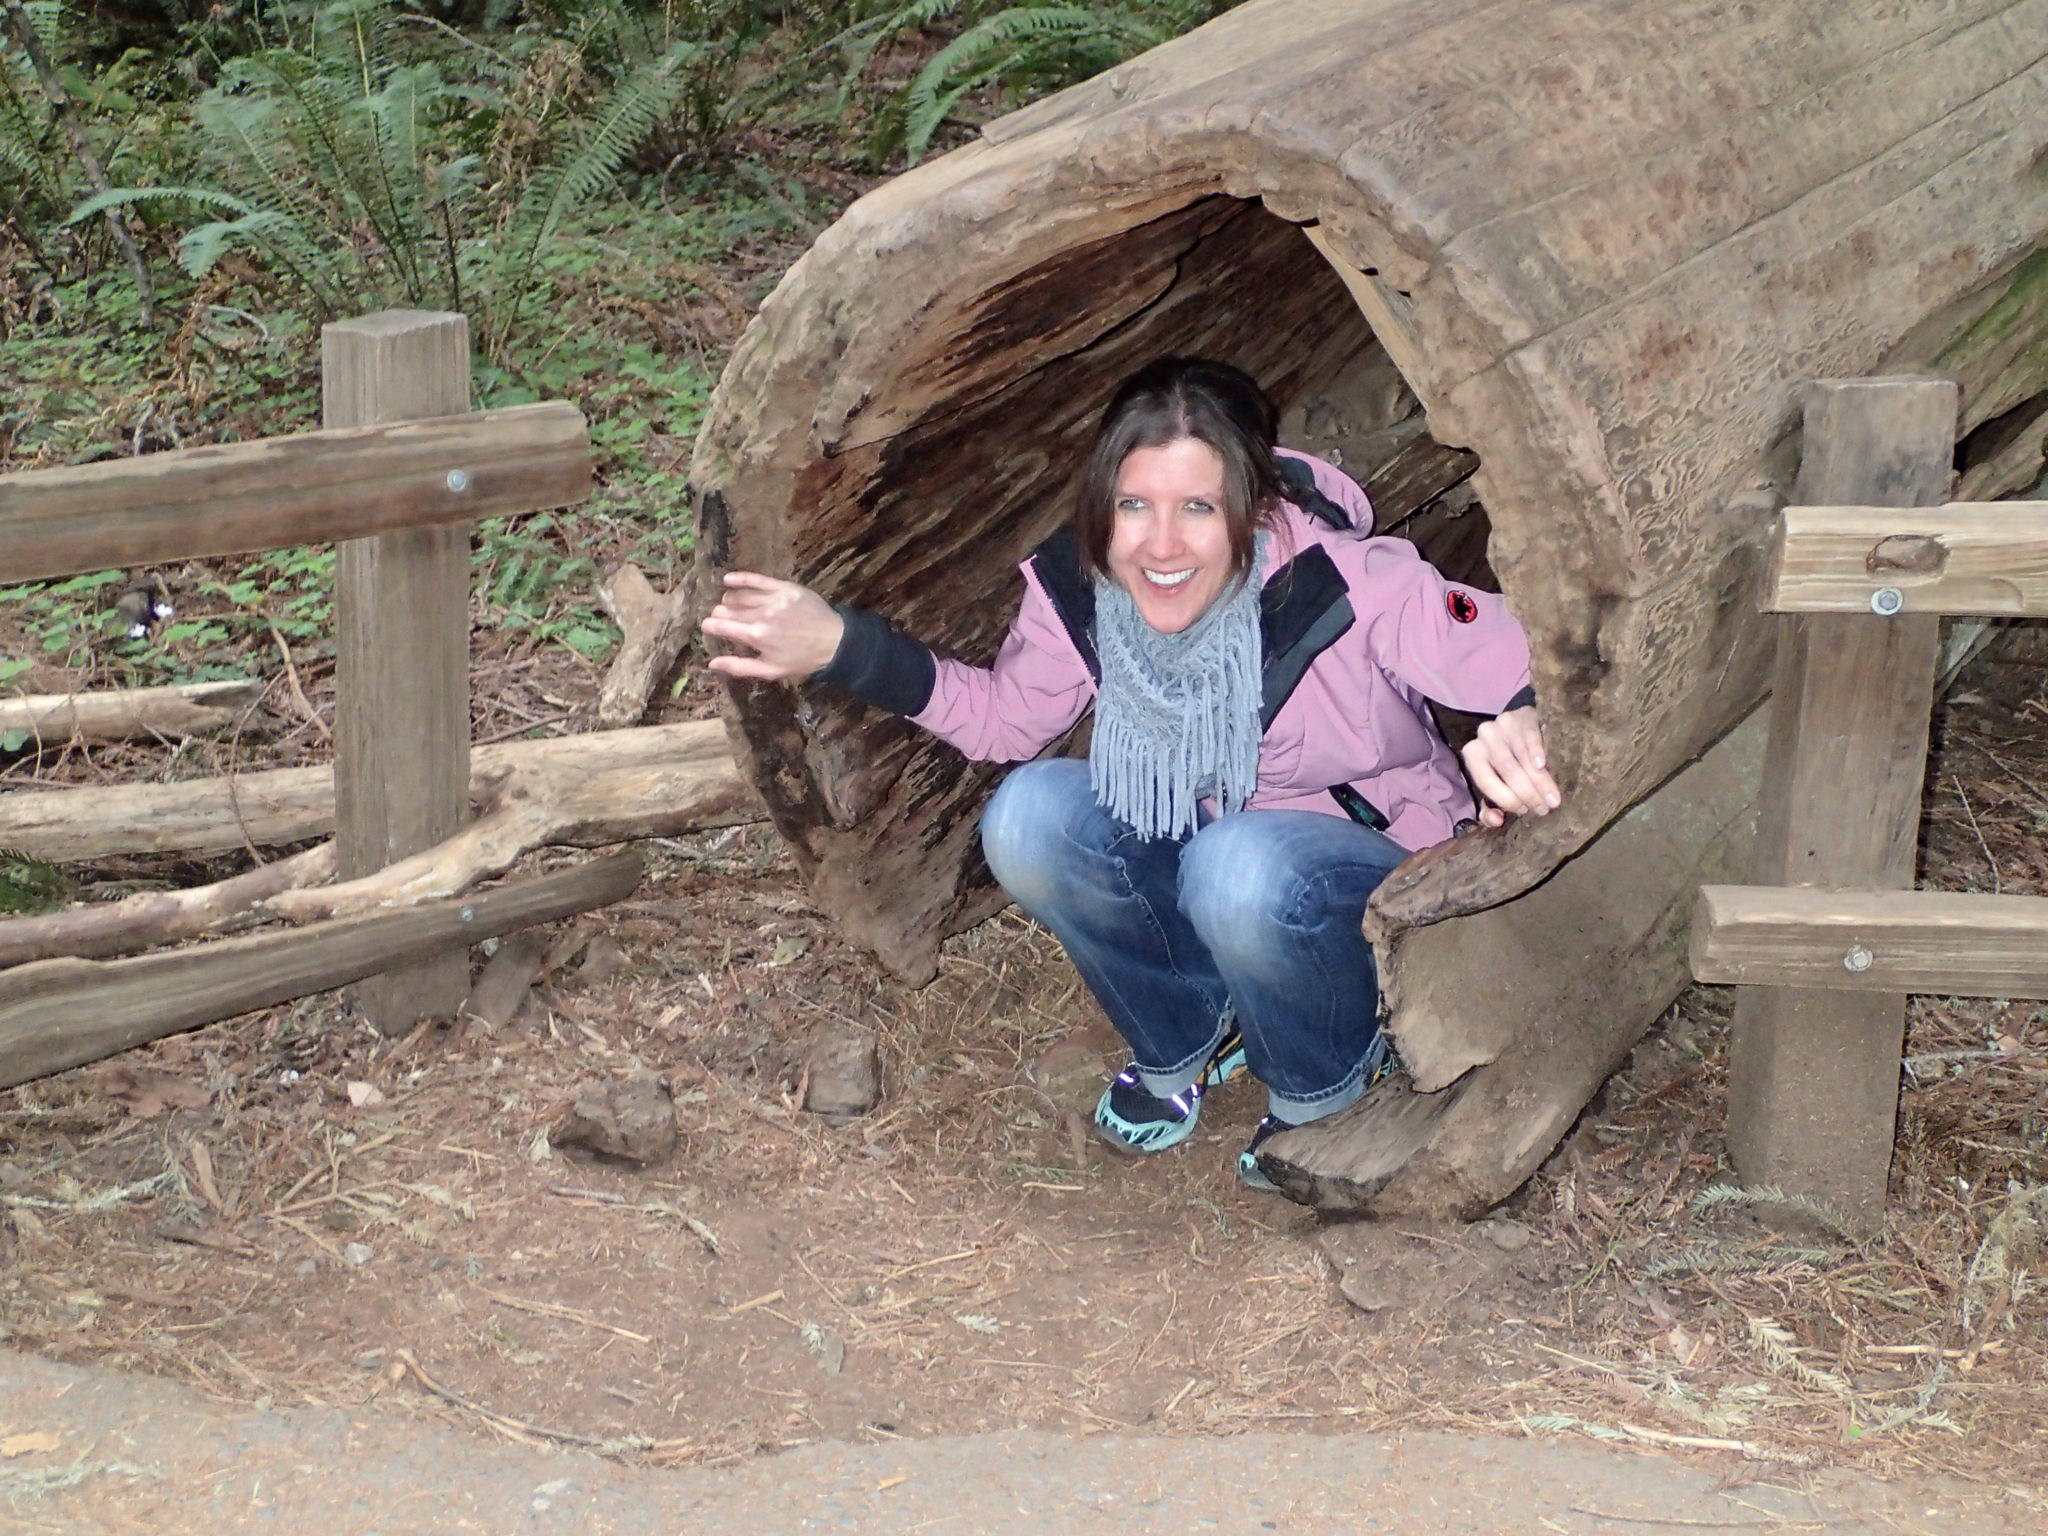 Susanne Martin at Muir Woods